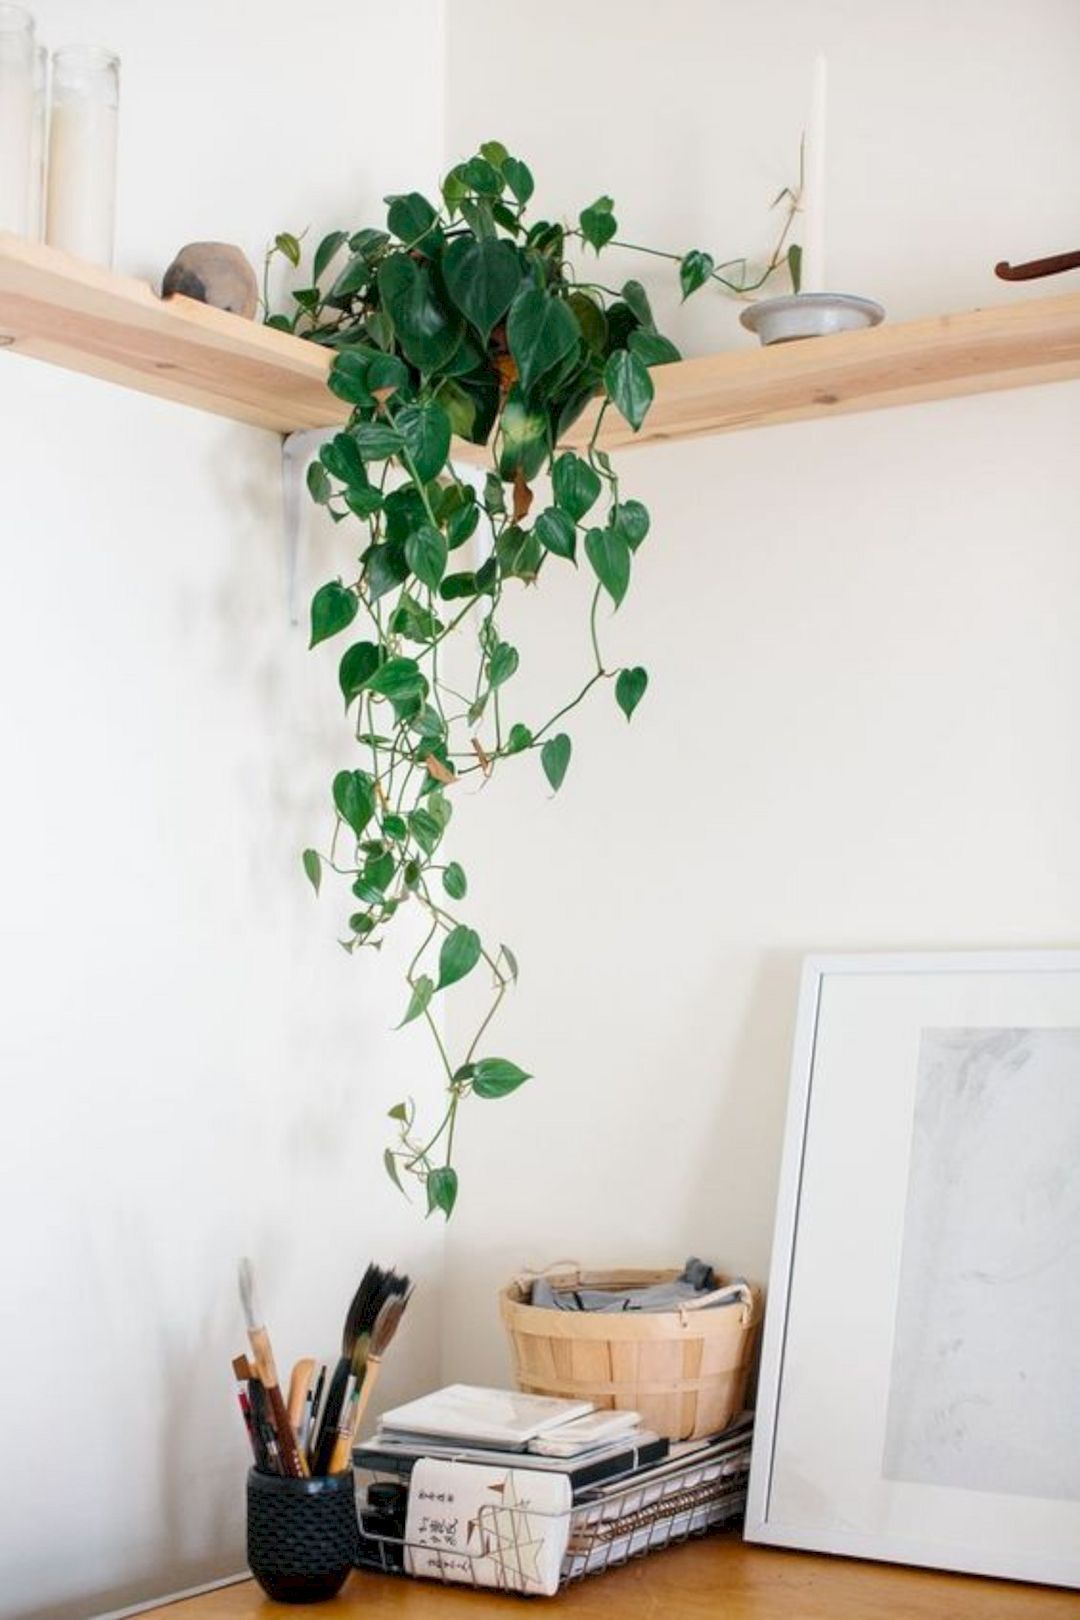 19 Unique Home Decor Ideas with Plants https://www ... on house crafts, house stars, house nature, house design, house mites, house flowers, house chemicals, house home, house rodents, house candy, house ferns, house family, house people, house decorations, house cars, house slugs, house fire, house plans, house gifts, house vines,